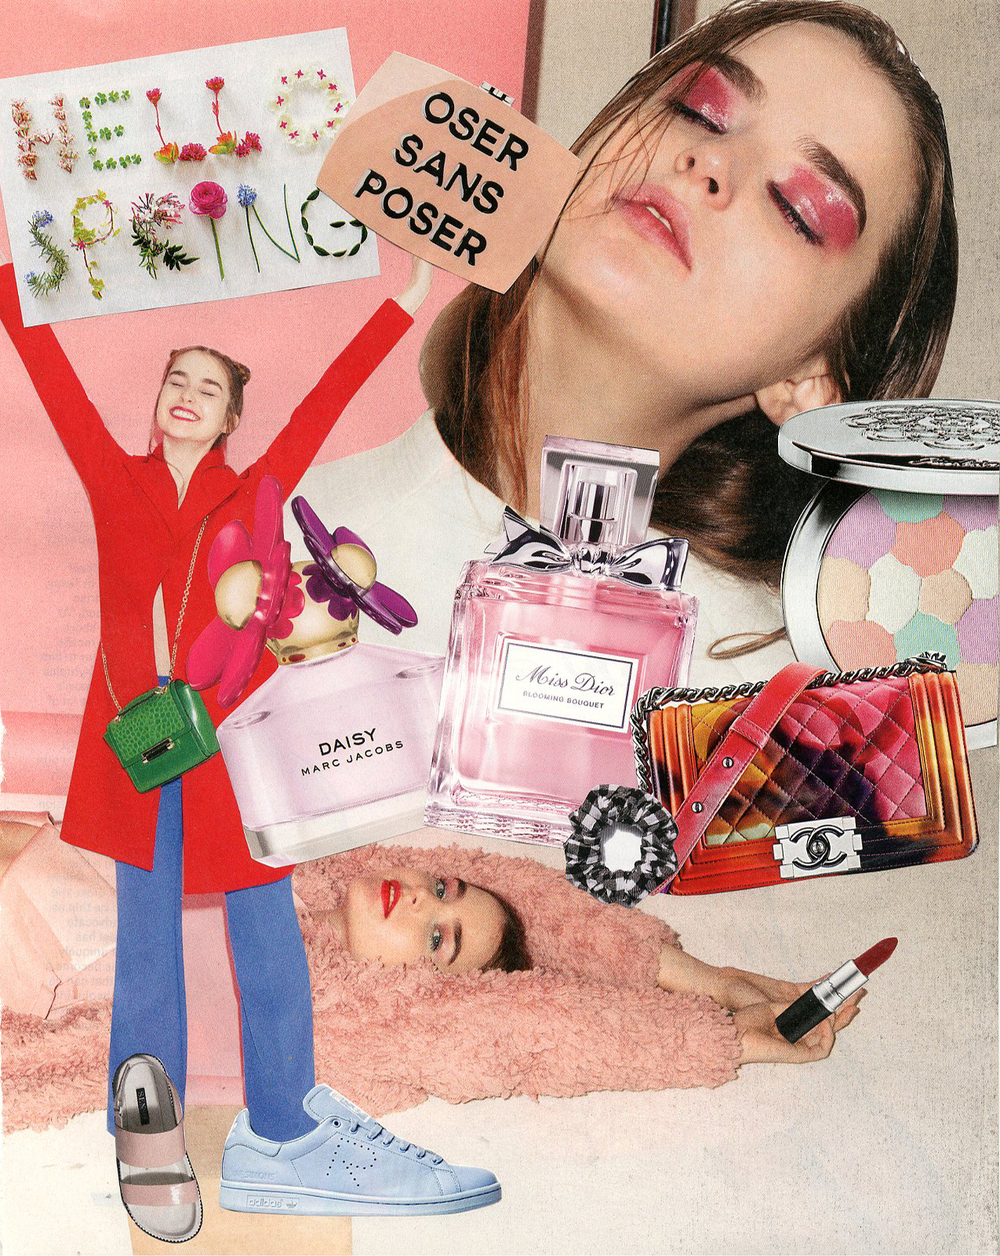 GIRLS WHO COLLAGE 2_Page_13 copy.jpg